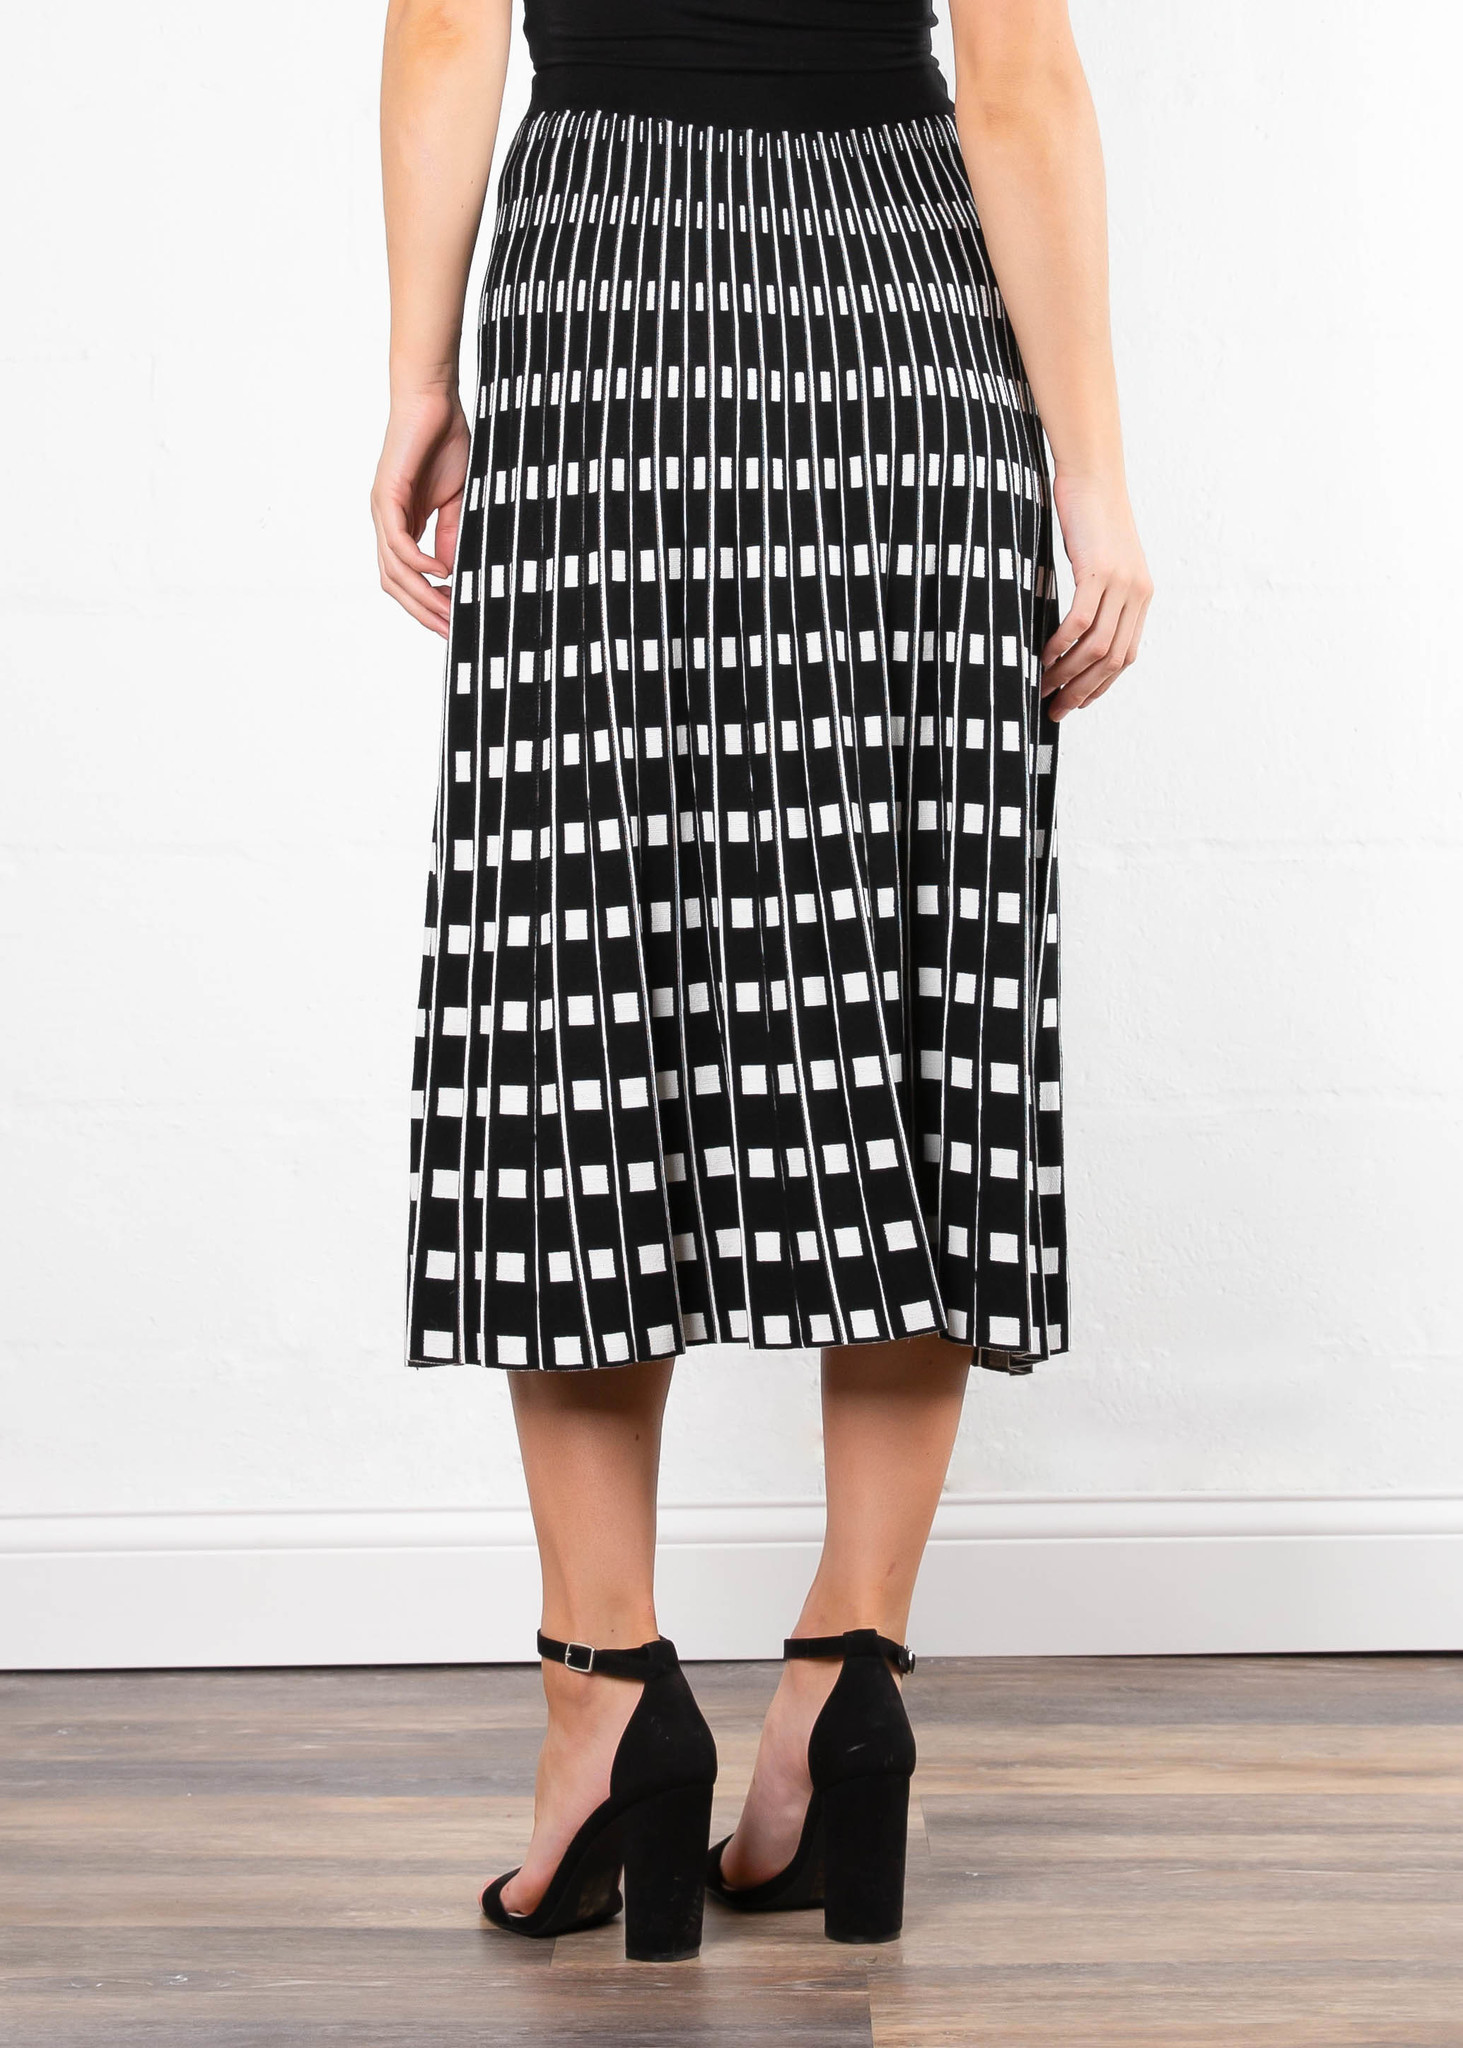 MOMENT TO SHINE PRINTED SKIRT